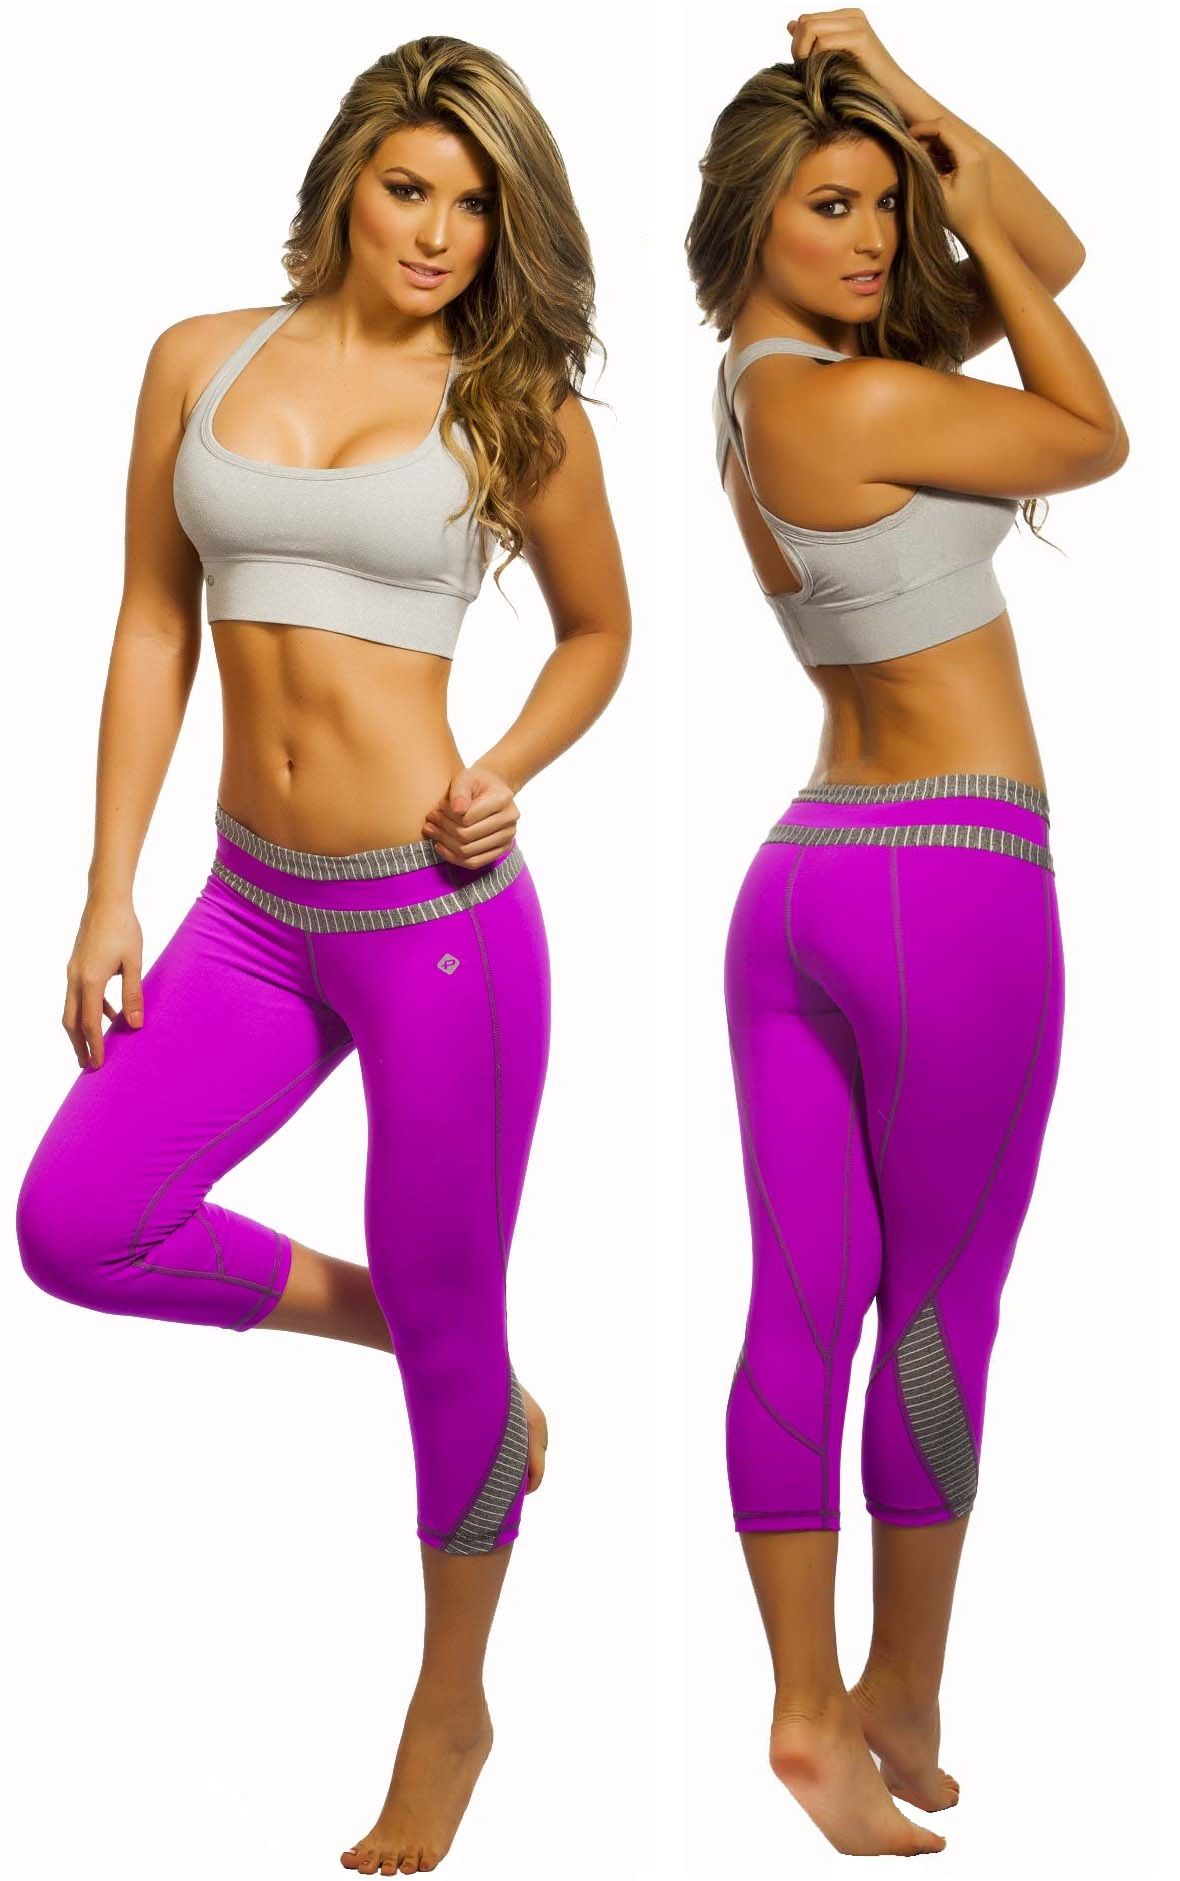 Protokolo 2688 Women Activewear Workout clothing Gym Wear is part of Workout Clothes Australia - Lycra, this material is extremely flexible, stretches up to 5 times and returns to its original shape, it is softer than standard nylon fabrics, keeps its bright colors after years of use, never fuzzes or pills, resists odor, tear and wear, wicks moisture away, dries very fast and does not fade or shrink  Look and feel sexy!! Women Activewear  Sexy Workout Clothes  Woman Gym Apparel  Woman Workout Clothing  Woman Sportswear  Sexy Fitness Clothing   Women casual clothig  Workout Clothing Woman  Women Fitness Clothing  Sexy Activewear  Women Brazilian Activewear  Women Sexy Sportswear